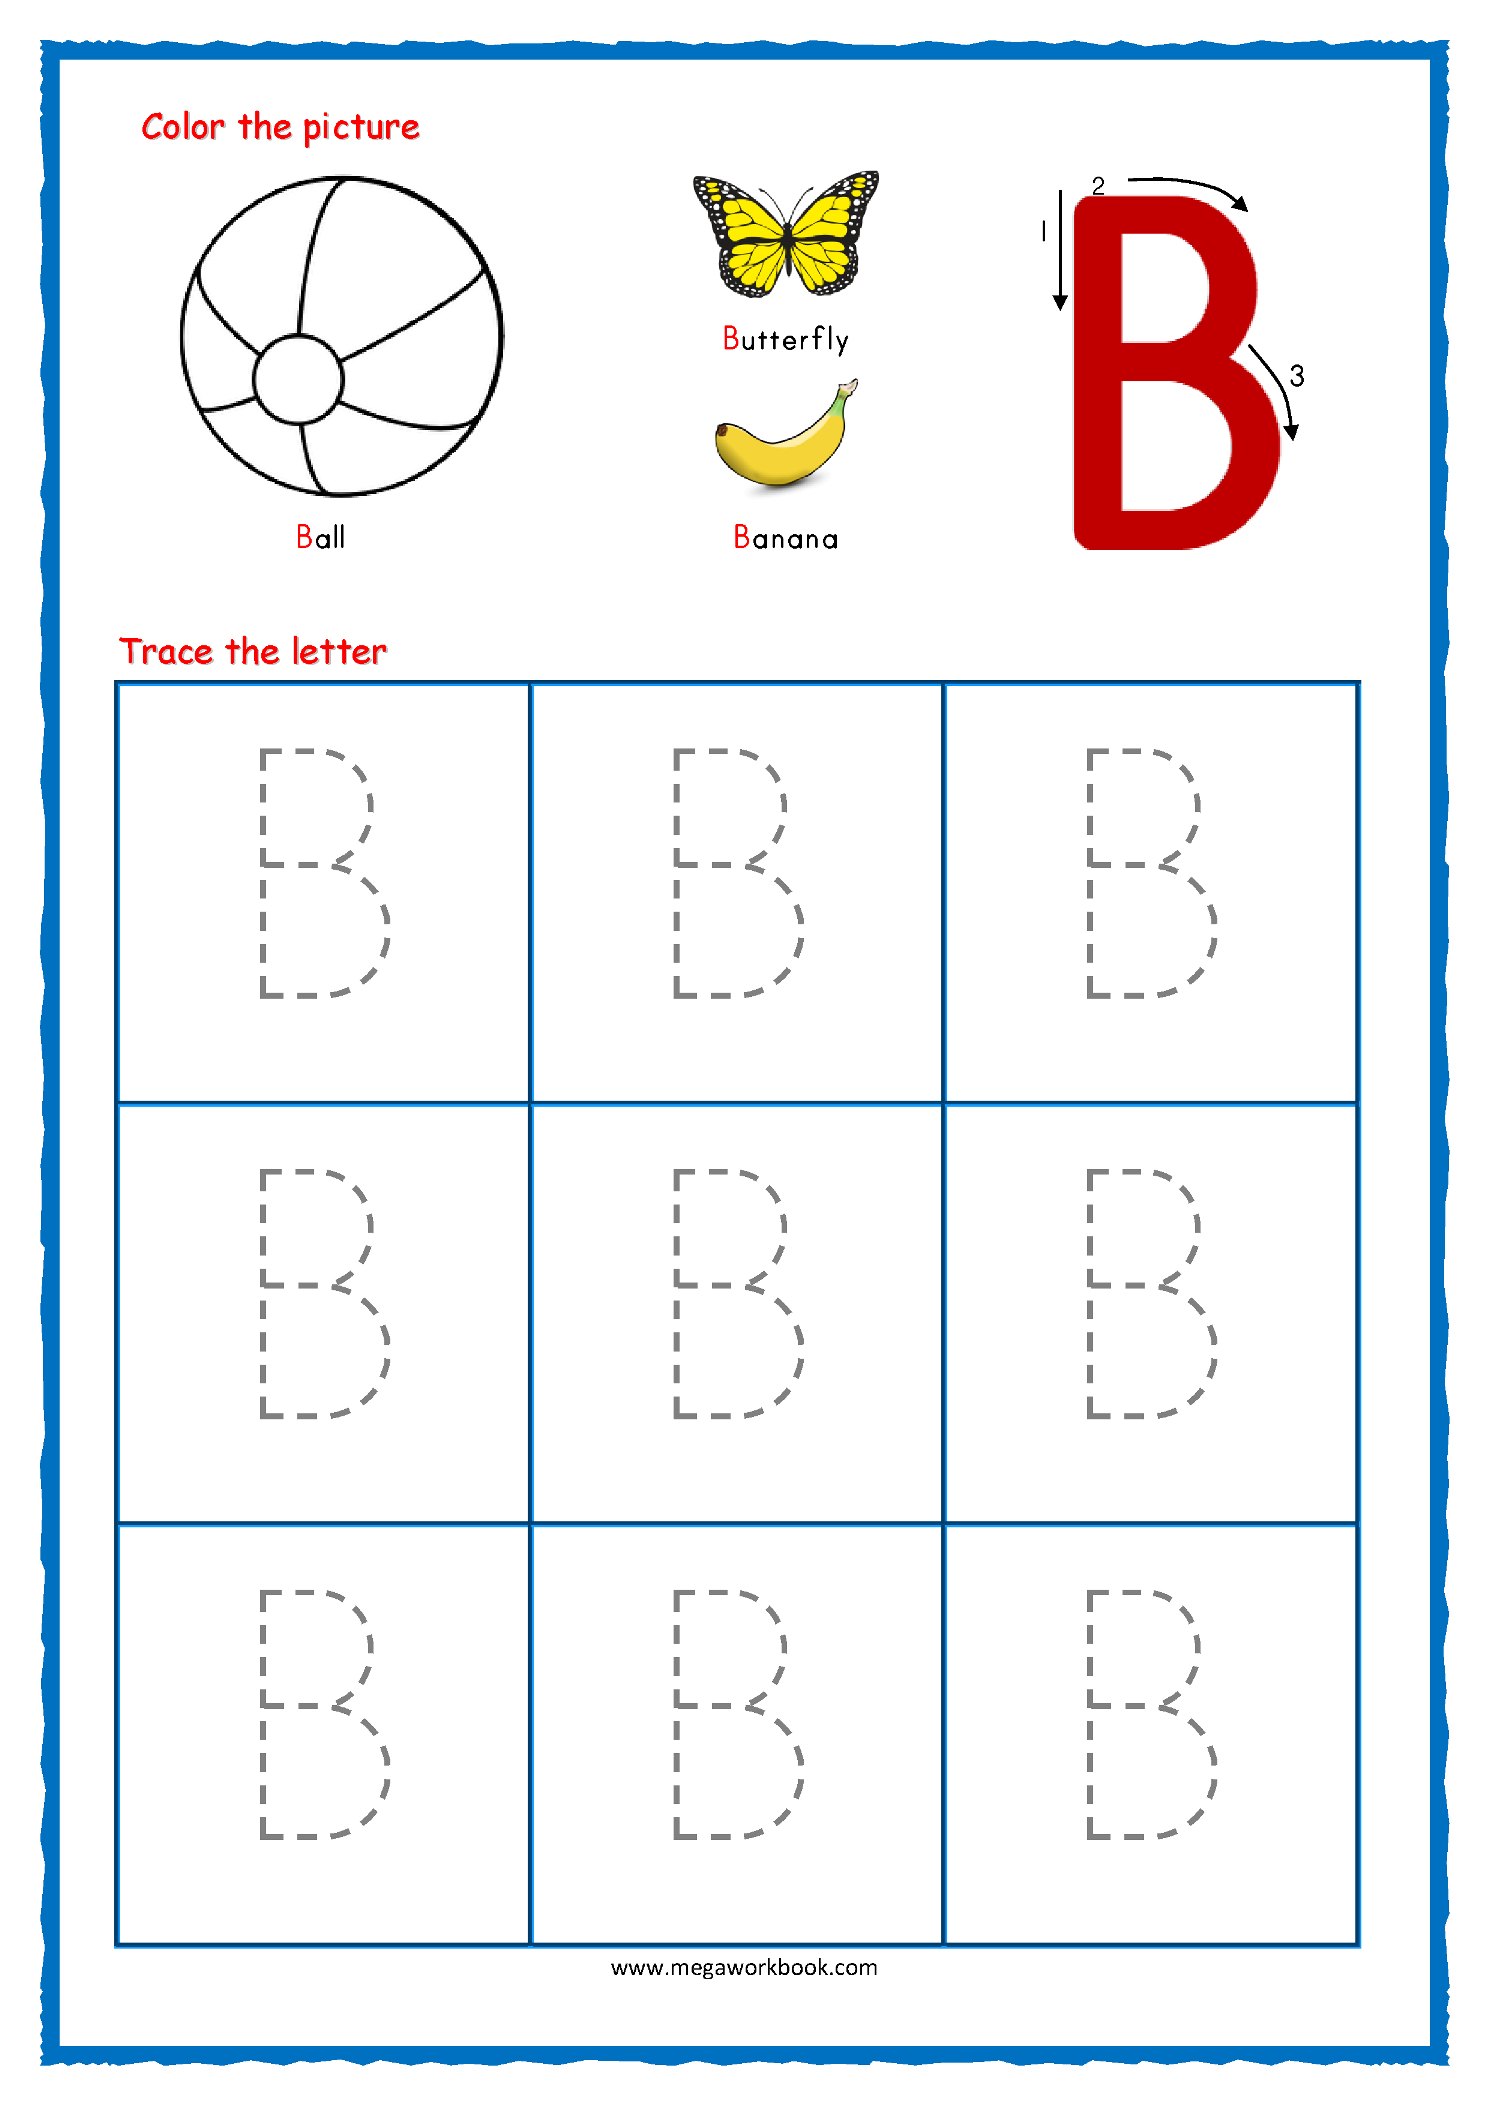 Coloring Book : Letter Tracingts Free Printable Coloring for Letter A Tracing Worksheets